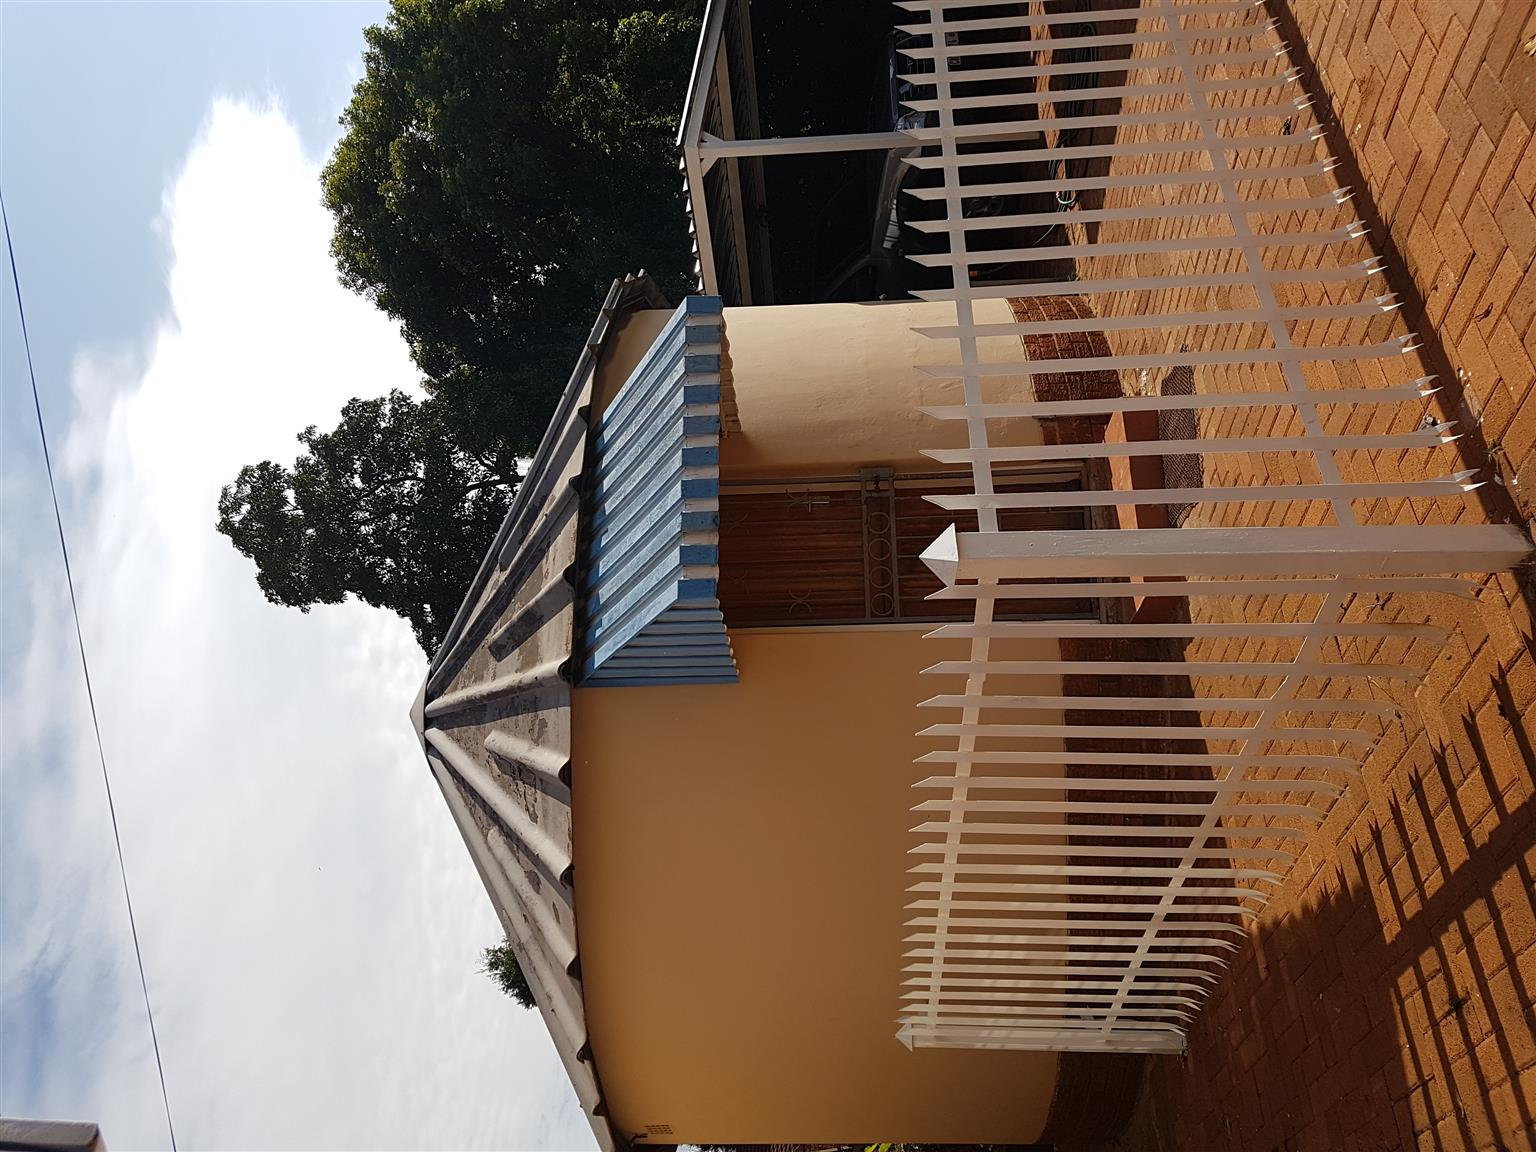 Rondavel to rent in Waverley, Pretoria, for 1 student/worker.